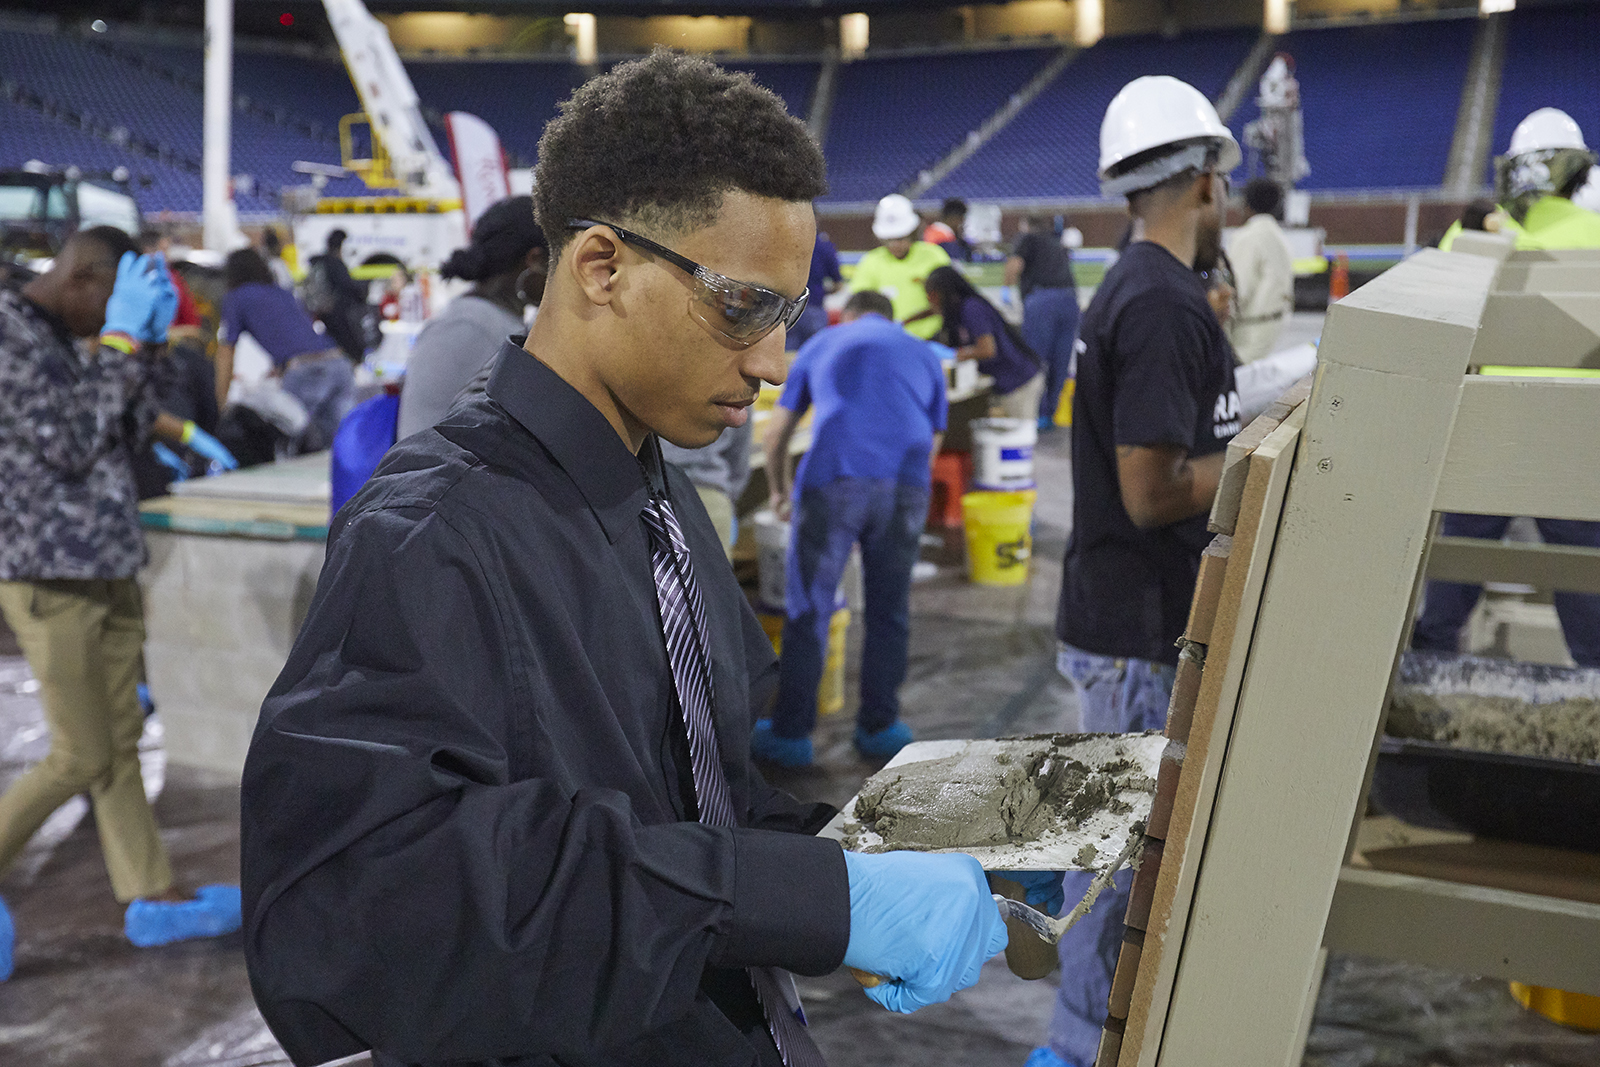 Young-Man-in-Skilled-Trades-Experience